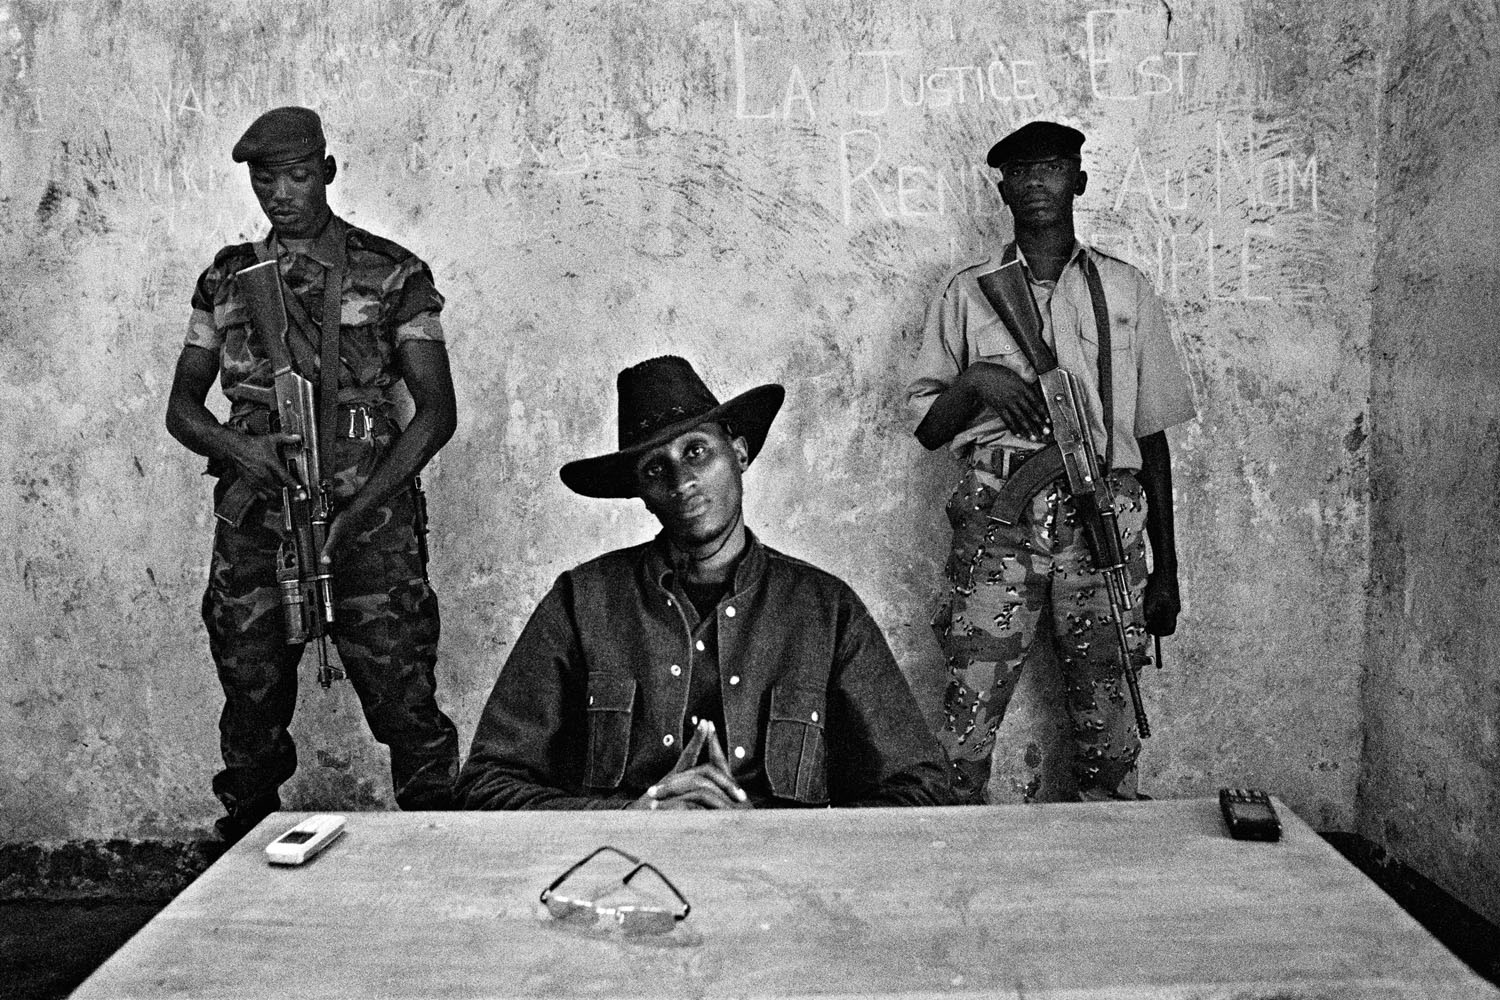 2007: Cédric Gerbehaye In 2007, for the Joop Swart Masterclass I wanted to show the fragility and weakness of the peace process in Eastern DRC. It was my first reportage in Sub Saharan Africa and the beginning of my works Congo in Limbo and Land of Cush.                                Dissident general Laurent Nkunda, leader of the CNDP, poses at his headquarters in the middle of the hills of Masisi, North Kivu, Democratic Republic of Congo. 2007.                                                                                              (WPP Joop Swart Masterclass, Fragile, 2007)